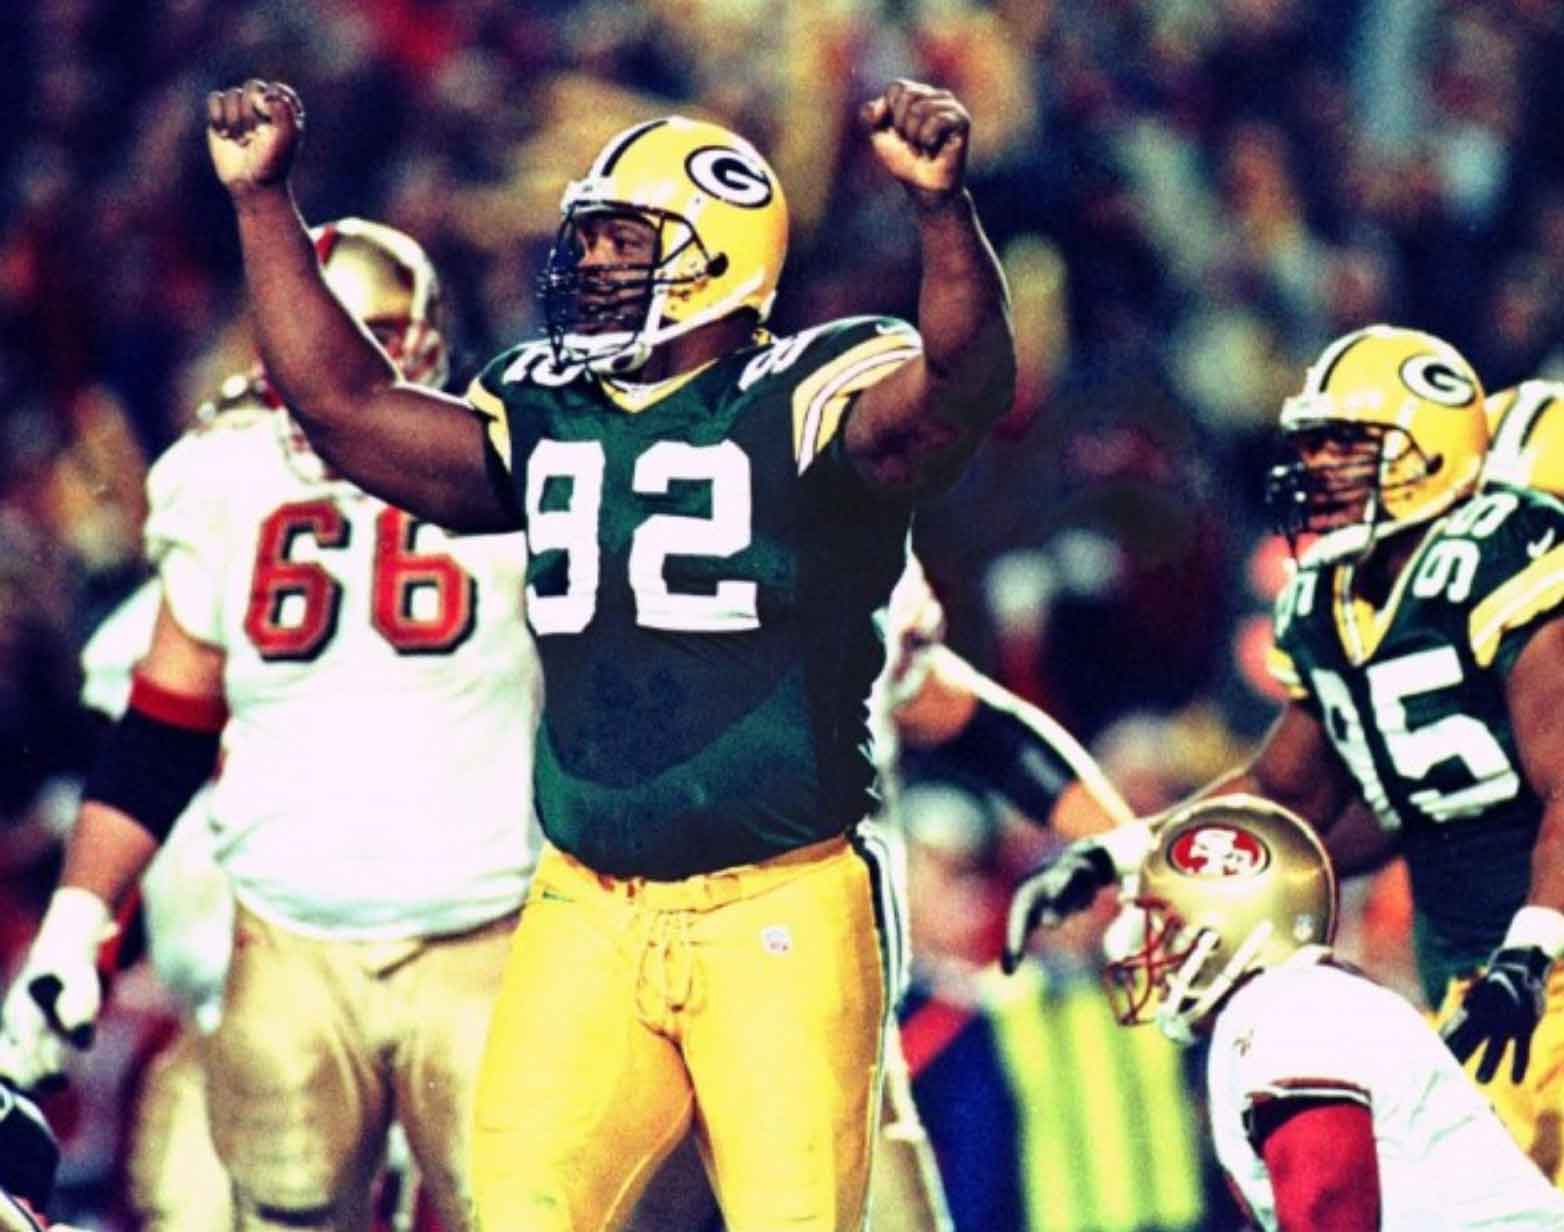 giocatori football americano: Reggie White